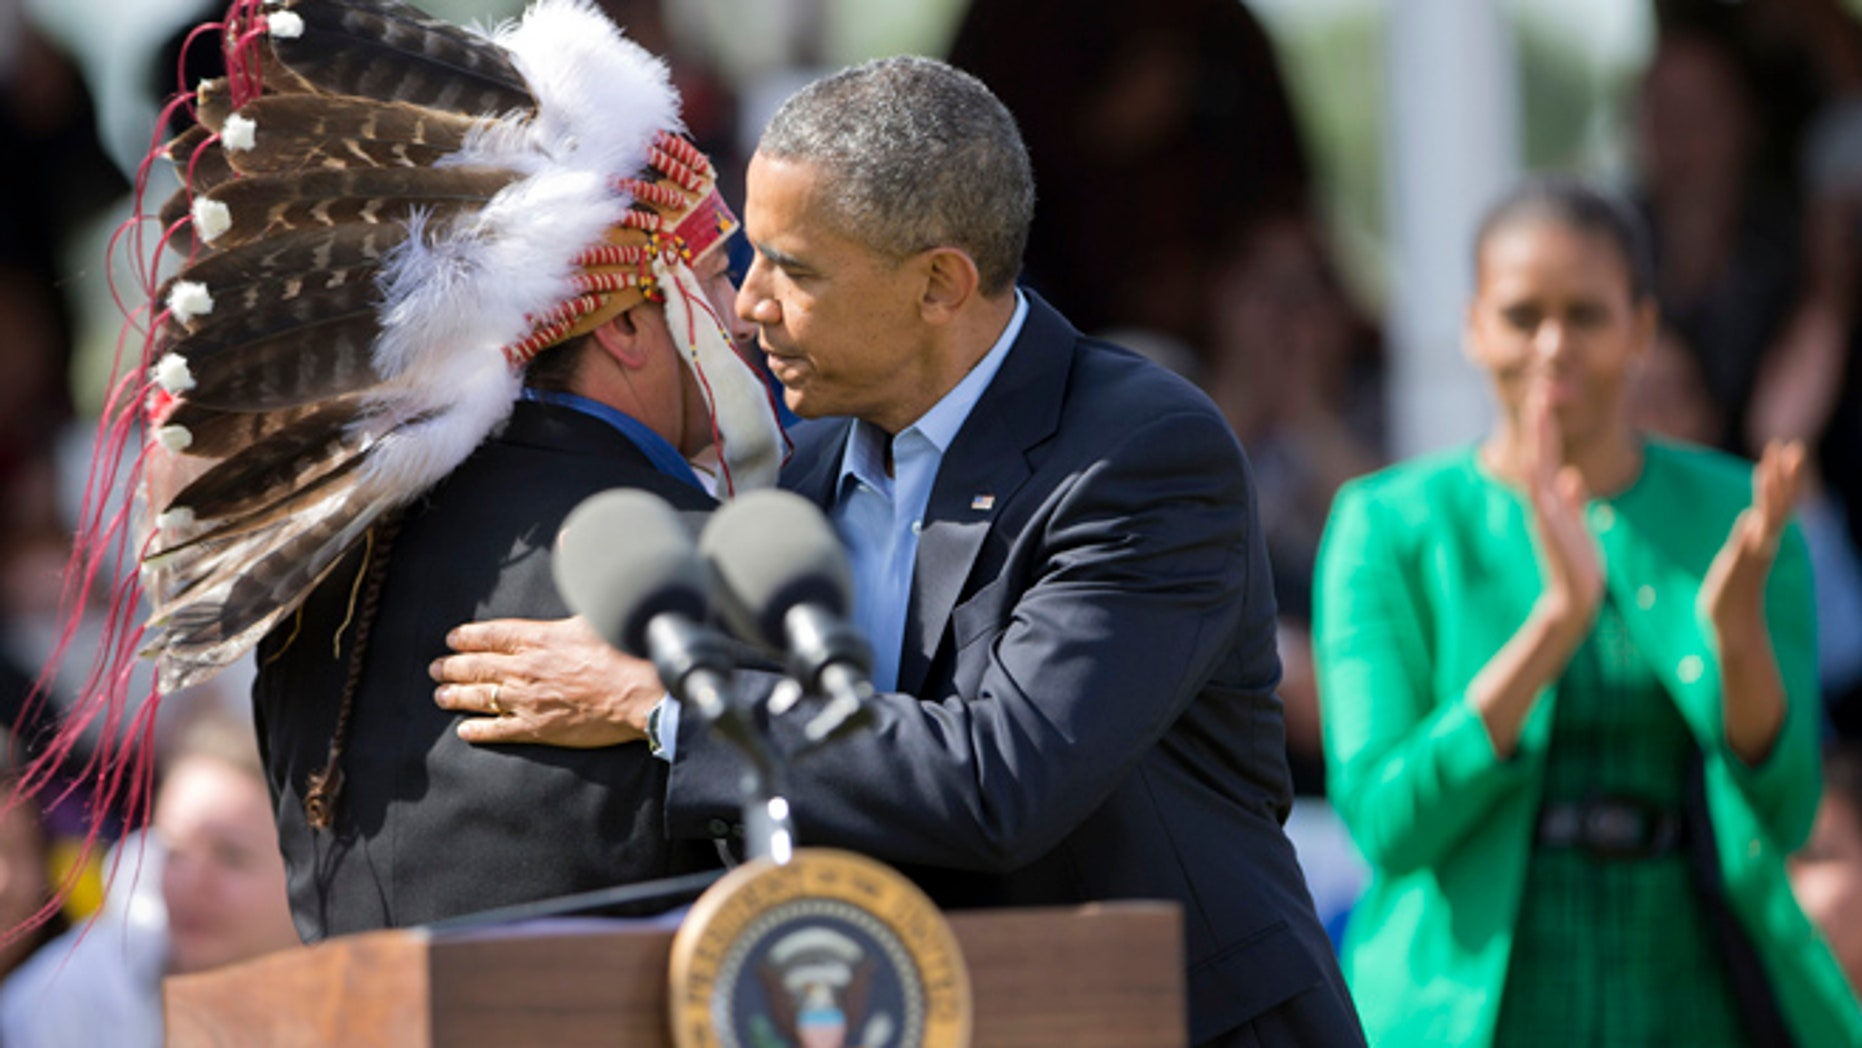 June 13, 2014: President Obama embraces Standing Rock Sioux Tribal Nation Chairman Dave Archambault II as first lady Michelle Obama watches in Cannon Ball, N.D.